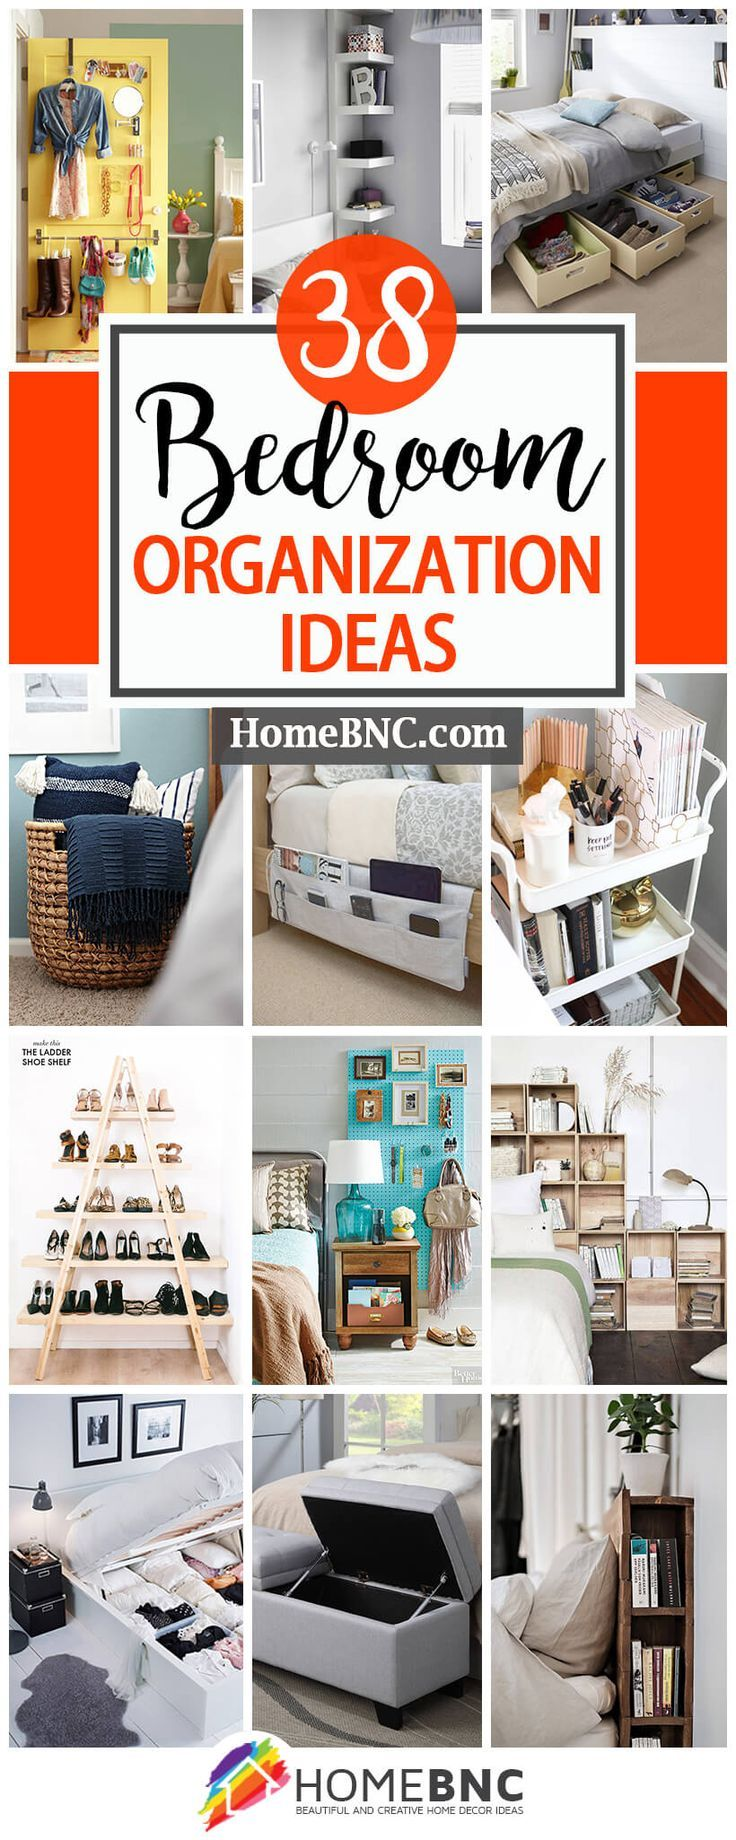 Interior Organization Ideas For Bedroom best 25 bedroom organization ideas on pinterest room decor 38 brilliant that will help you keep everything in its place